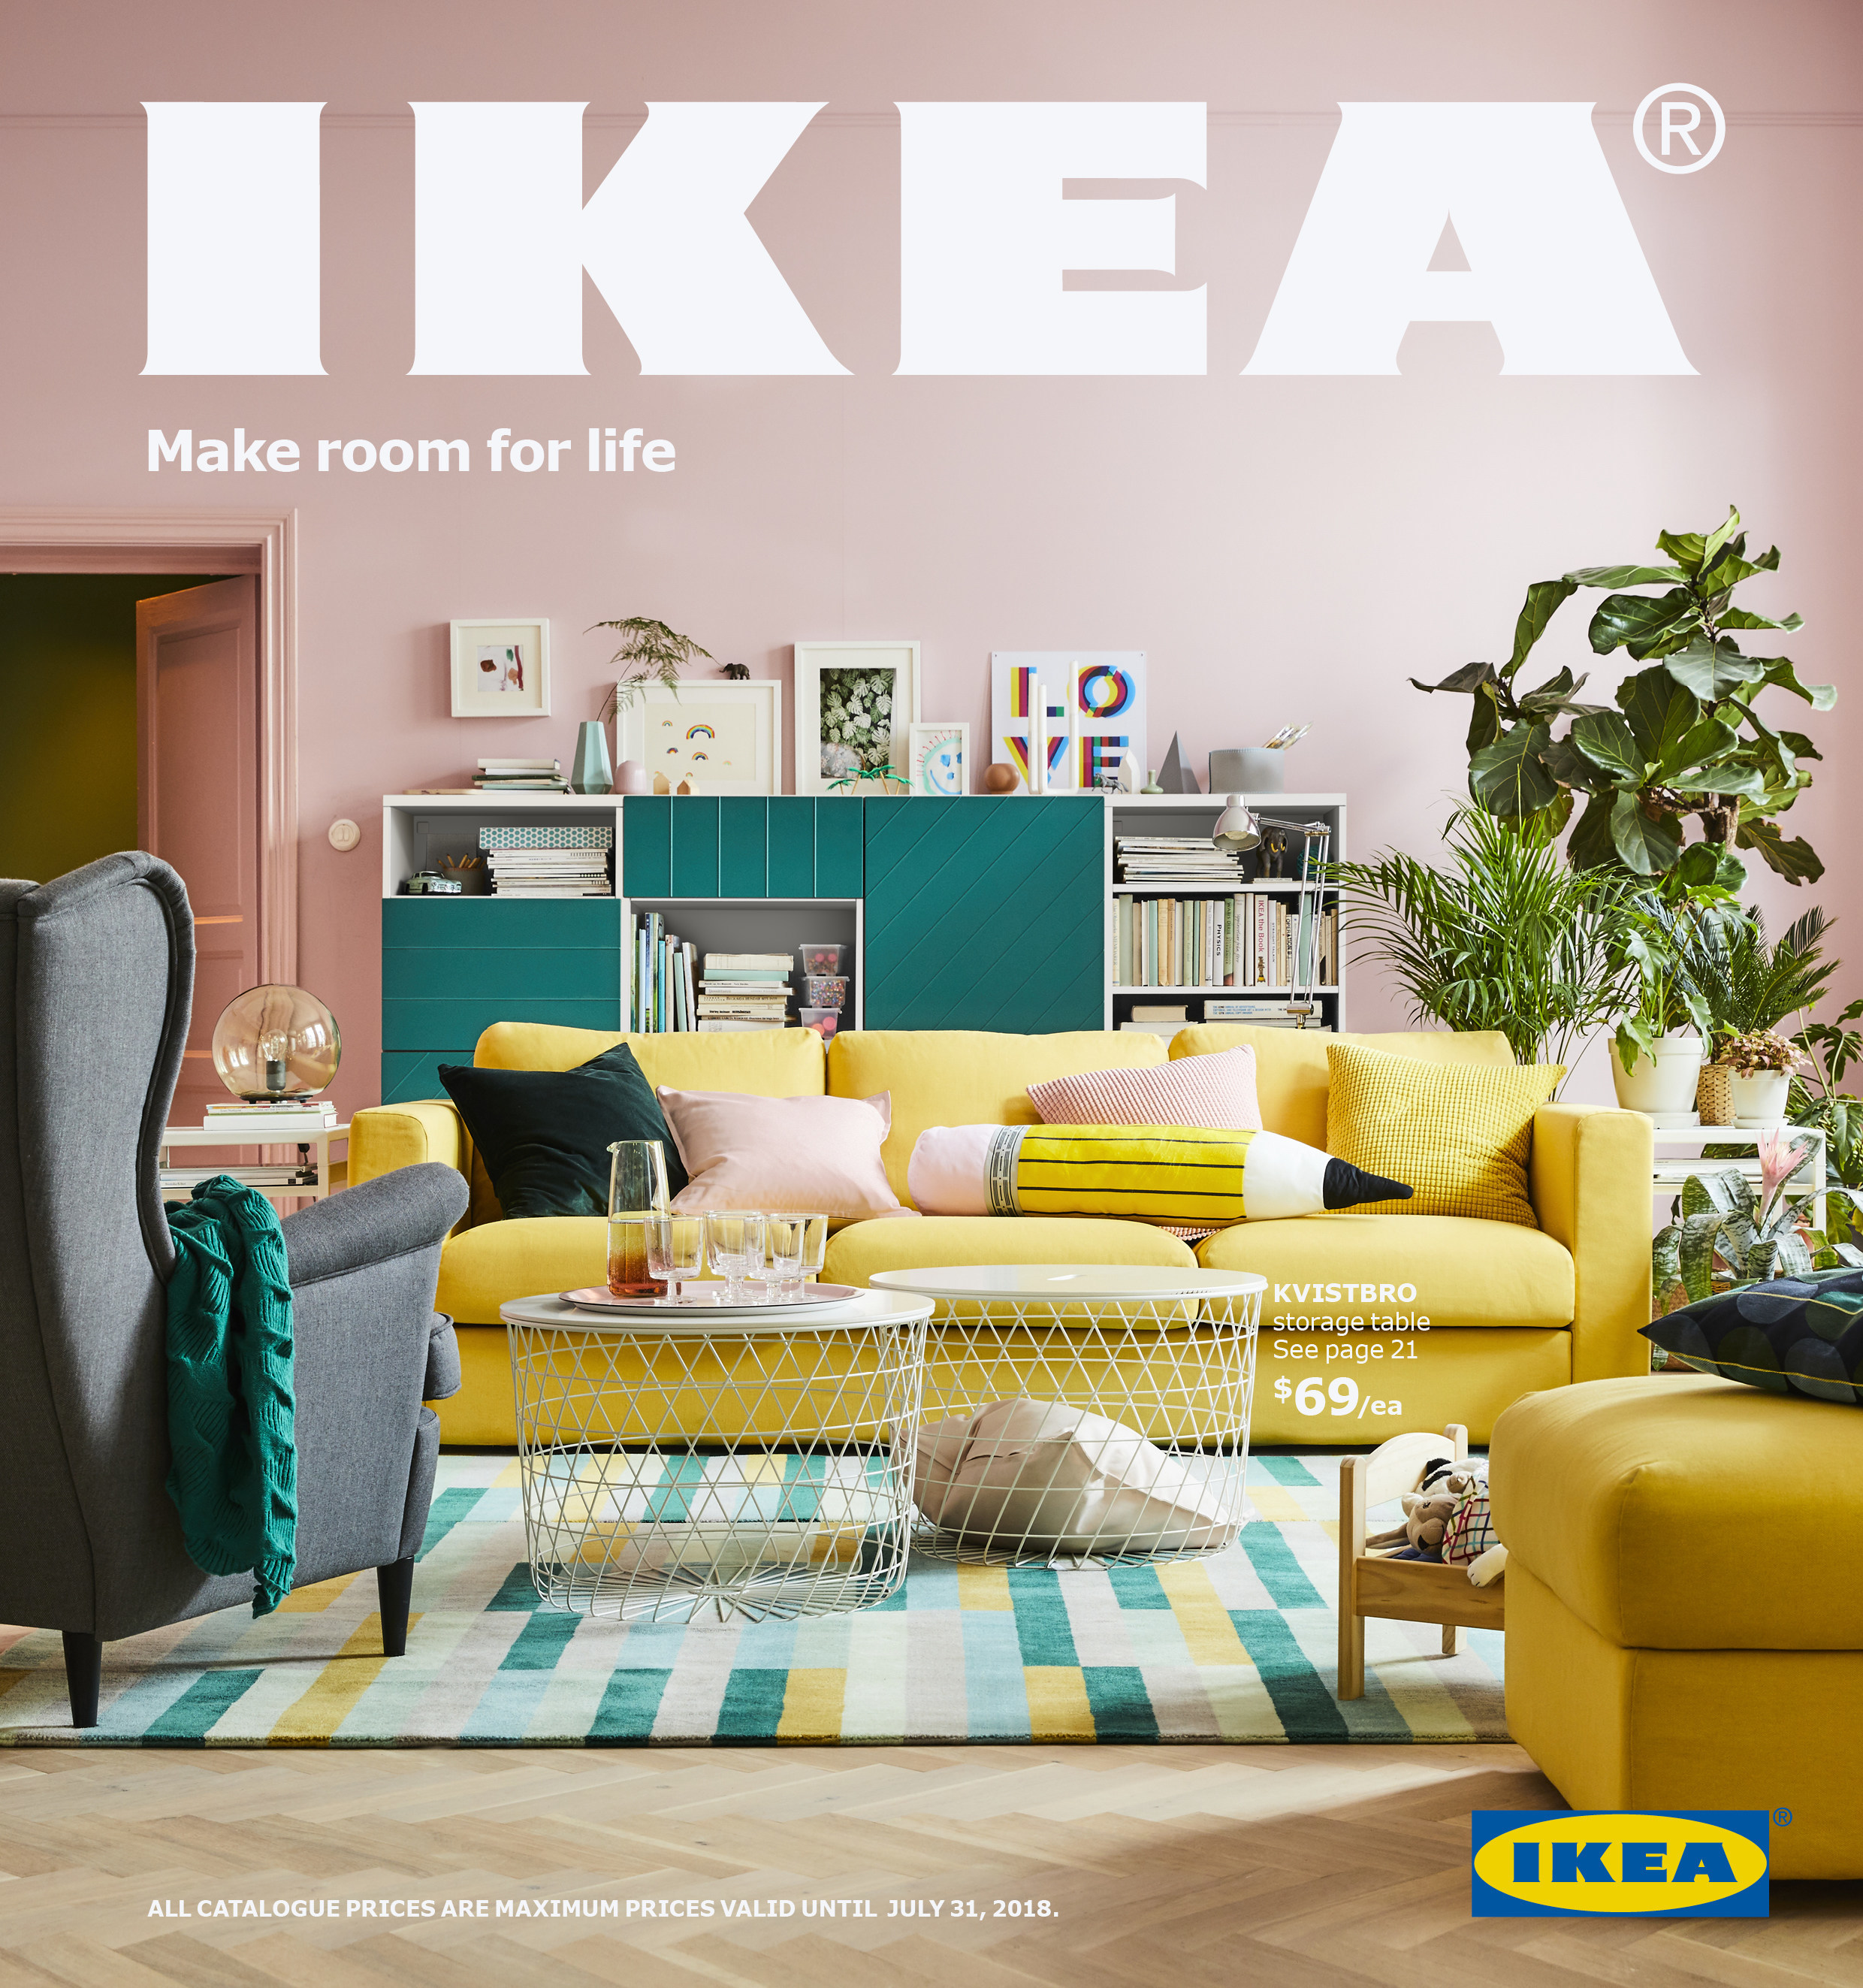 2018 IKEA Catalogue set to land in mailboxes across Canada  CNW Group IKEA  Canada. 2018 IKEA Catalogue Set to Land in Mailboxes Across Canada